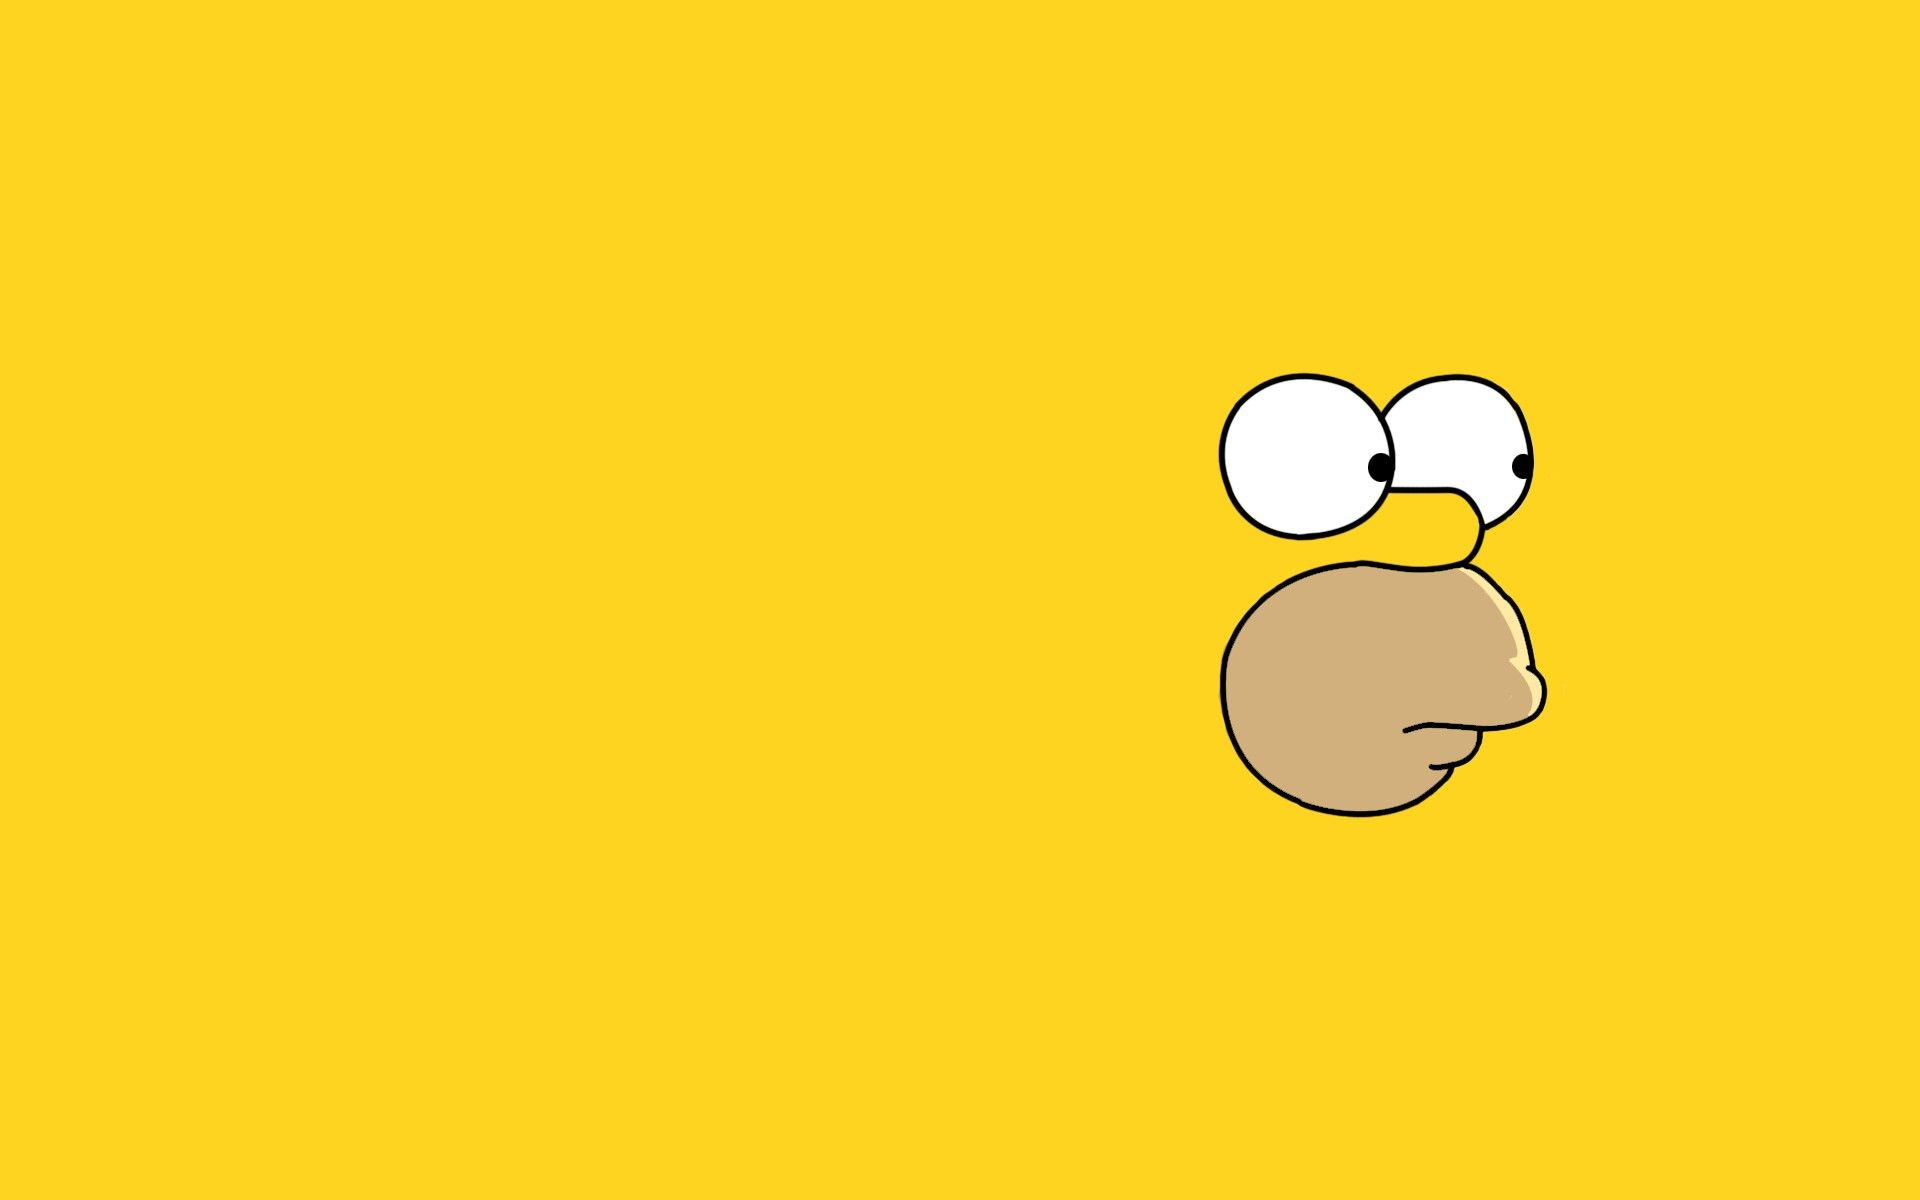 Homer Simpson 1920x1200 Hd Wallpaper In 2019 The Simpsons